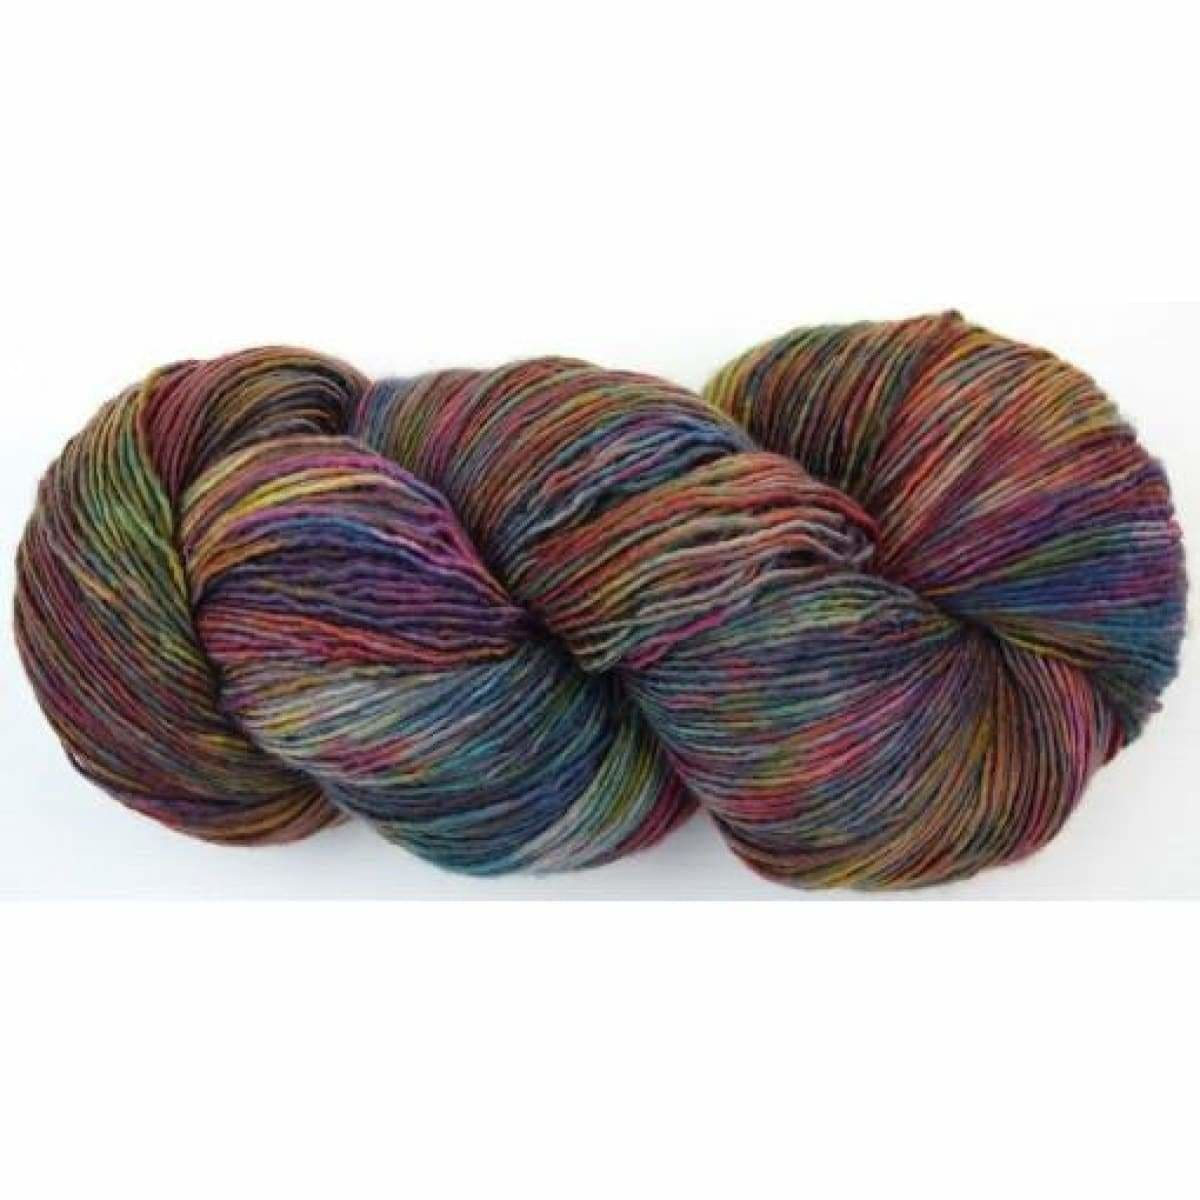 PAOLA - Fingering Weight - Autumn - YARN